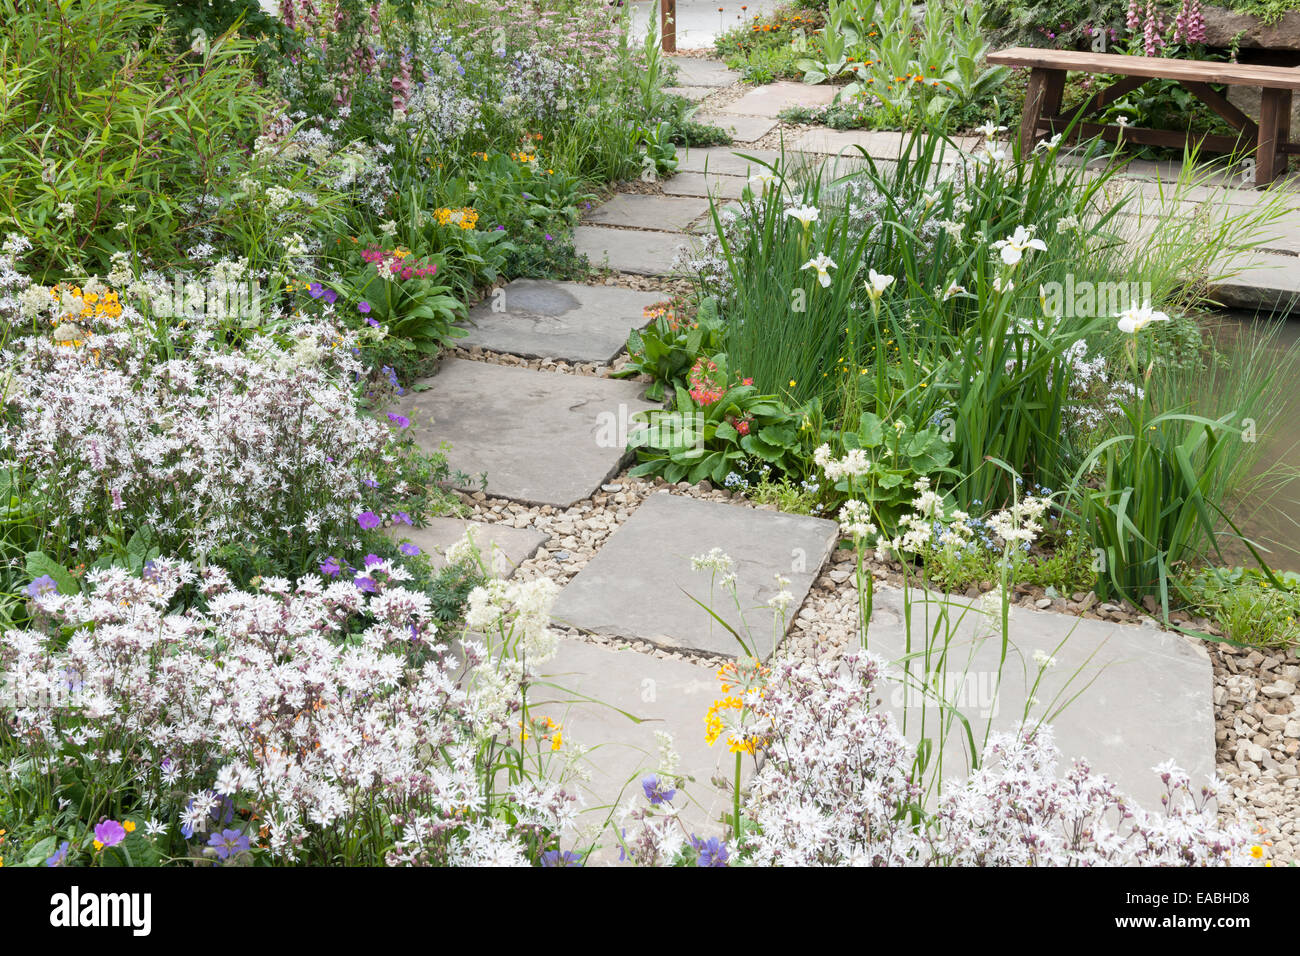 Paved Small Garden With Pond At Chelsea Flower Show Stock